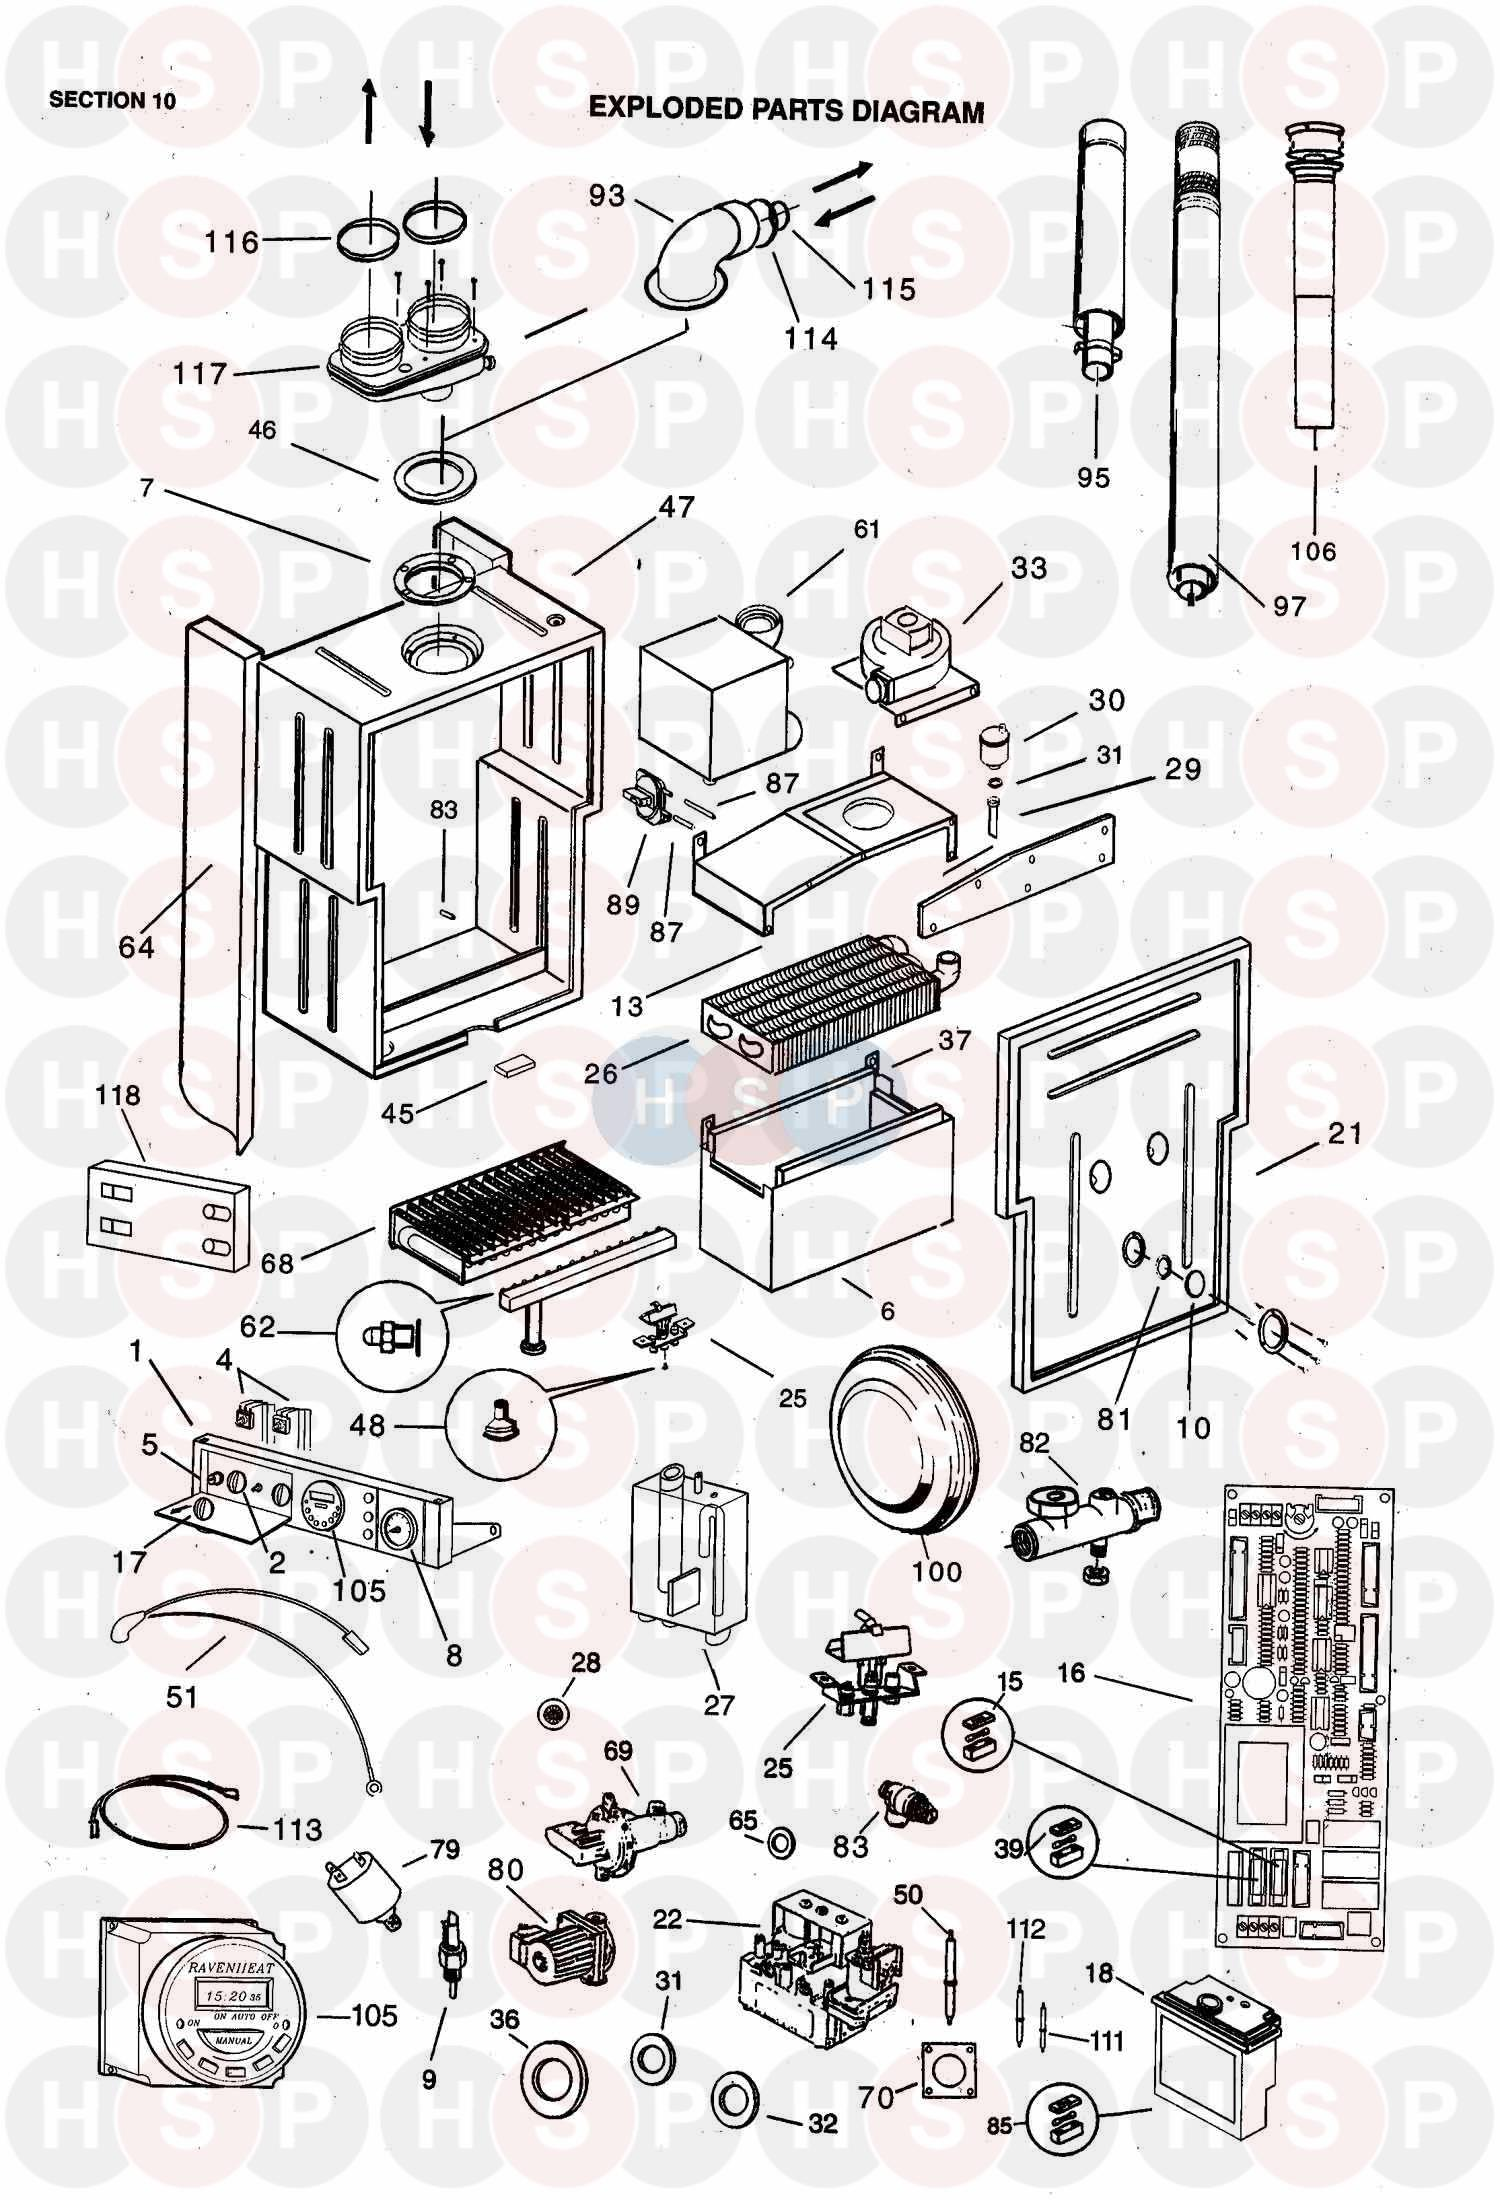 Ravenheat CSI 85T (CONDENSING) (EXPLODED VIEW) Diagram